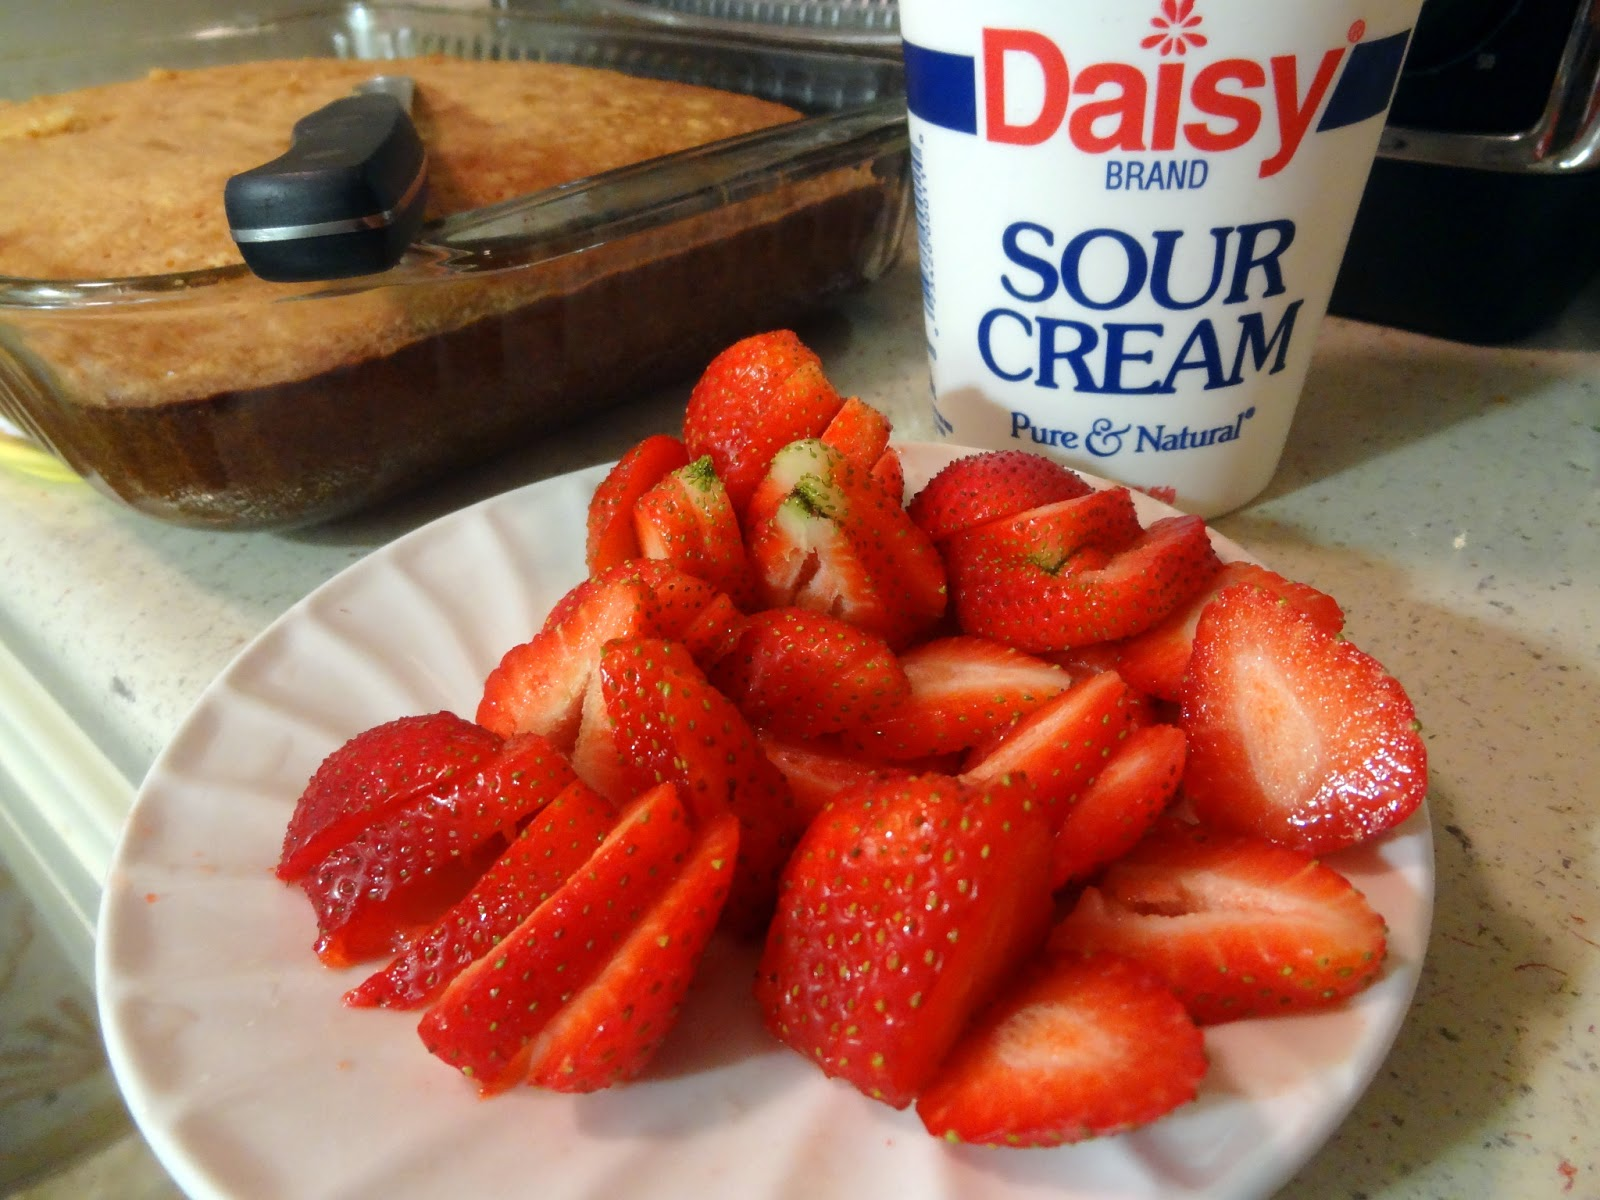 Miss Mochi S Adventures Strawberry Romanoff Butter Mochi Today, we're investigating the strange case of daisy brown. miss mochi s adventures blogger